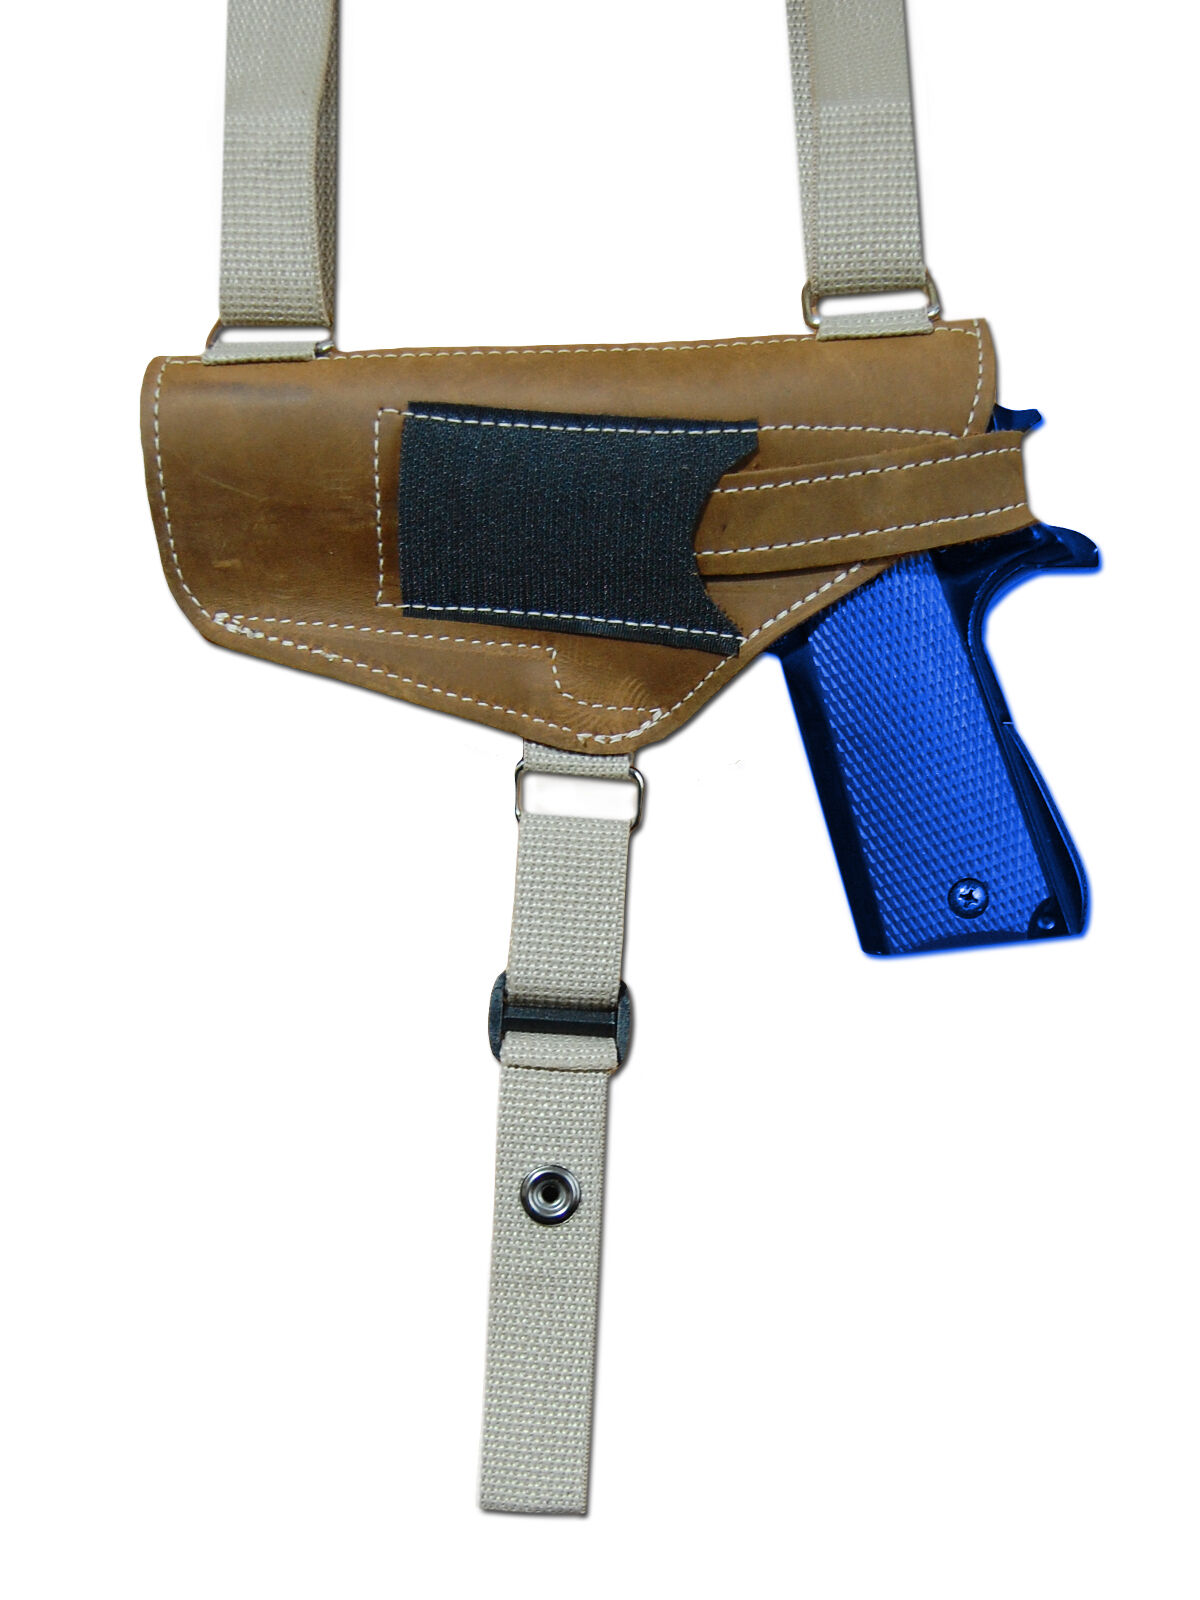 NEW Barsony Olive Drab Leder Shoulder Holster Holster Holster for Sig-Sauer Full Größe 9mm HOR 767c62